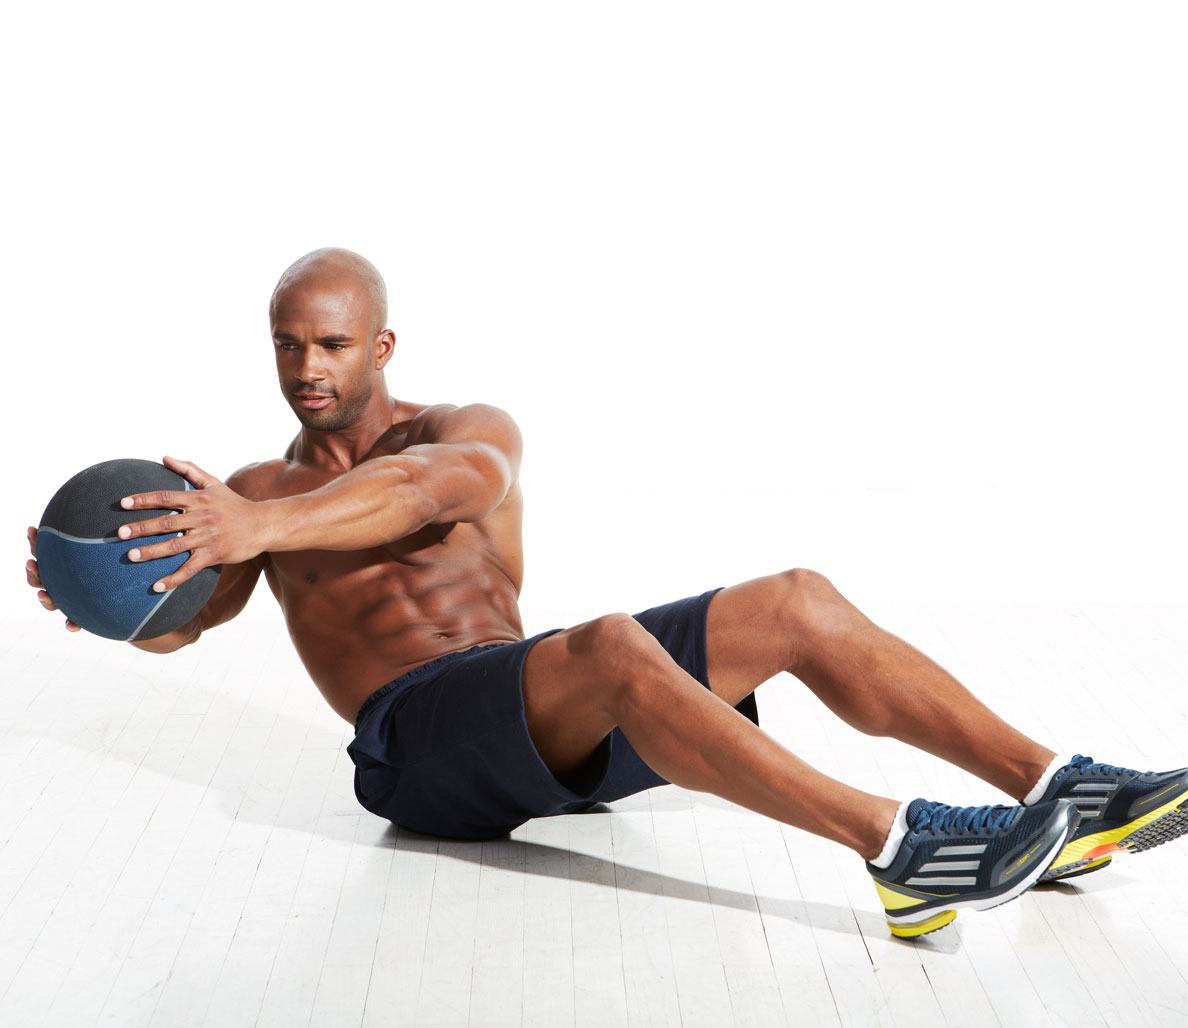 Abs Exercises That Can Cause Injuries